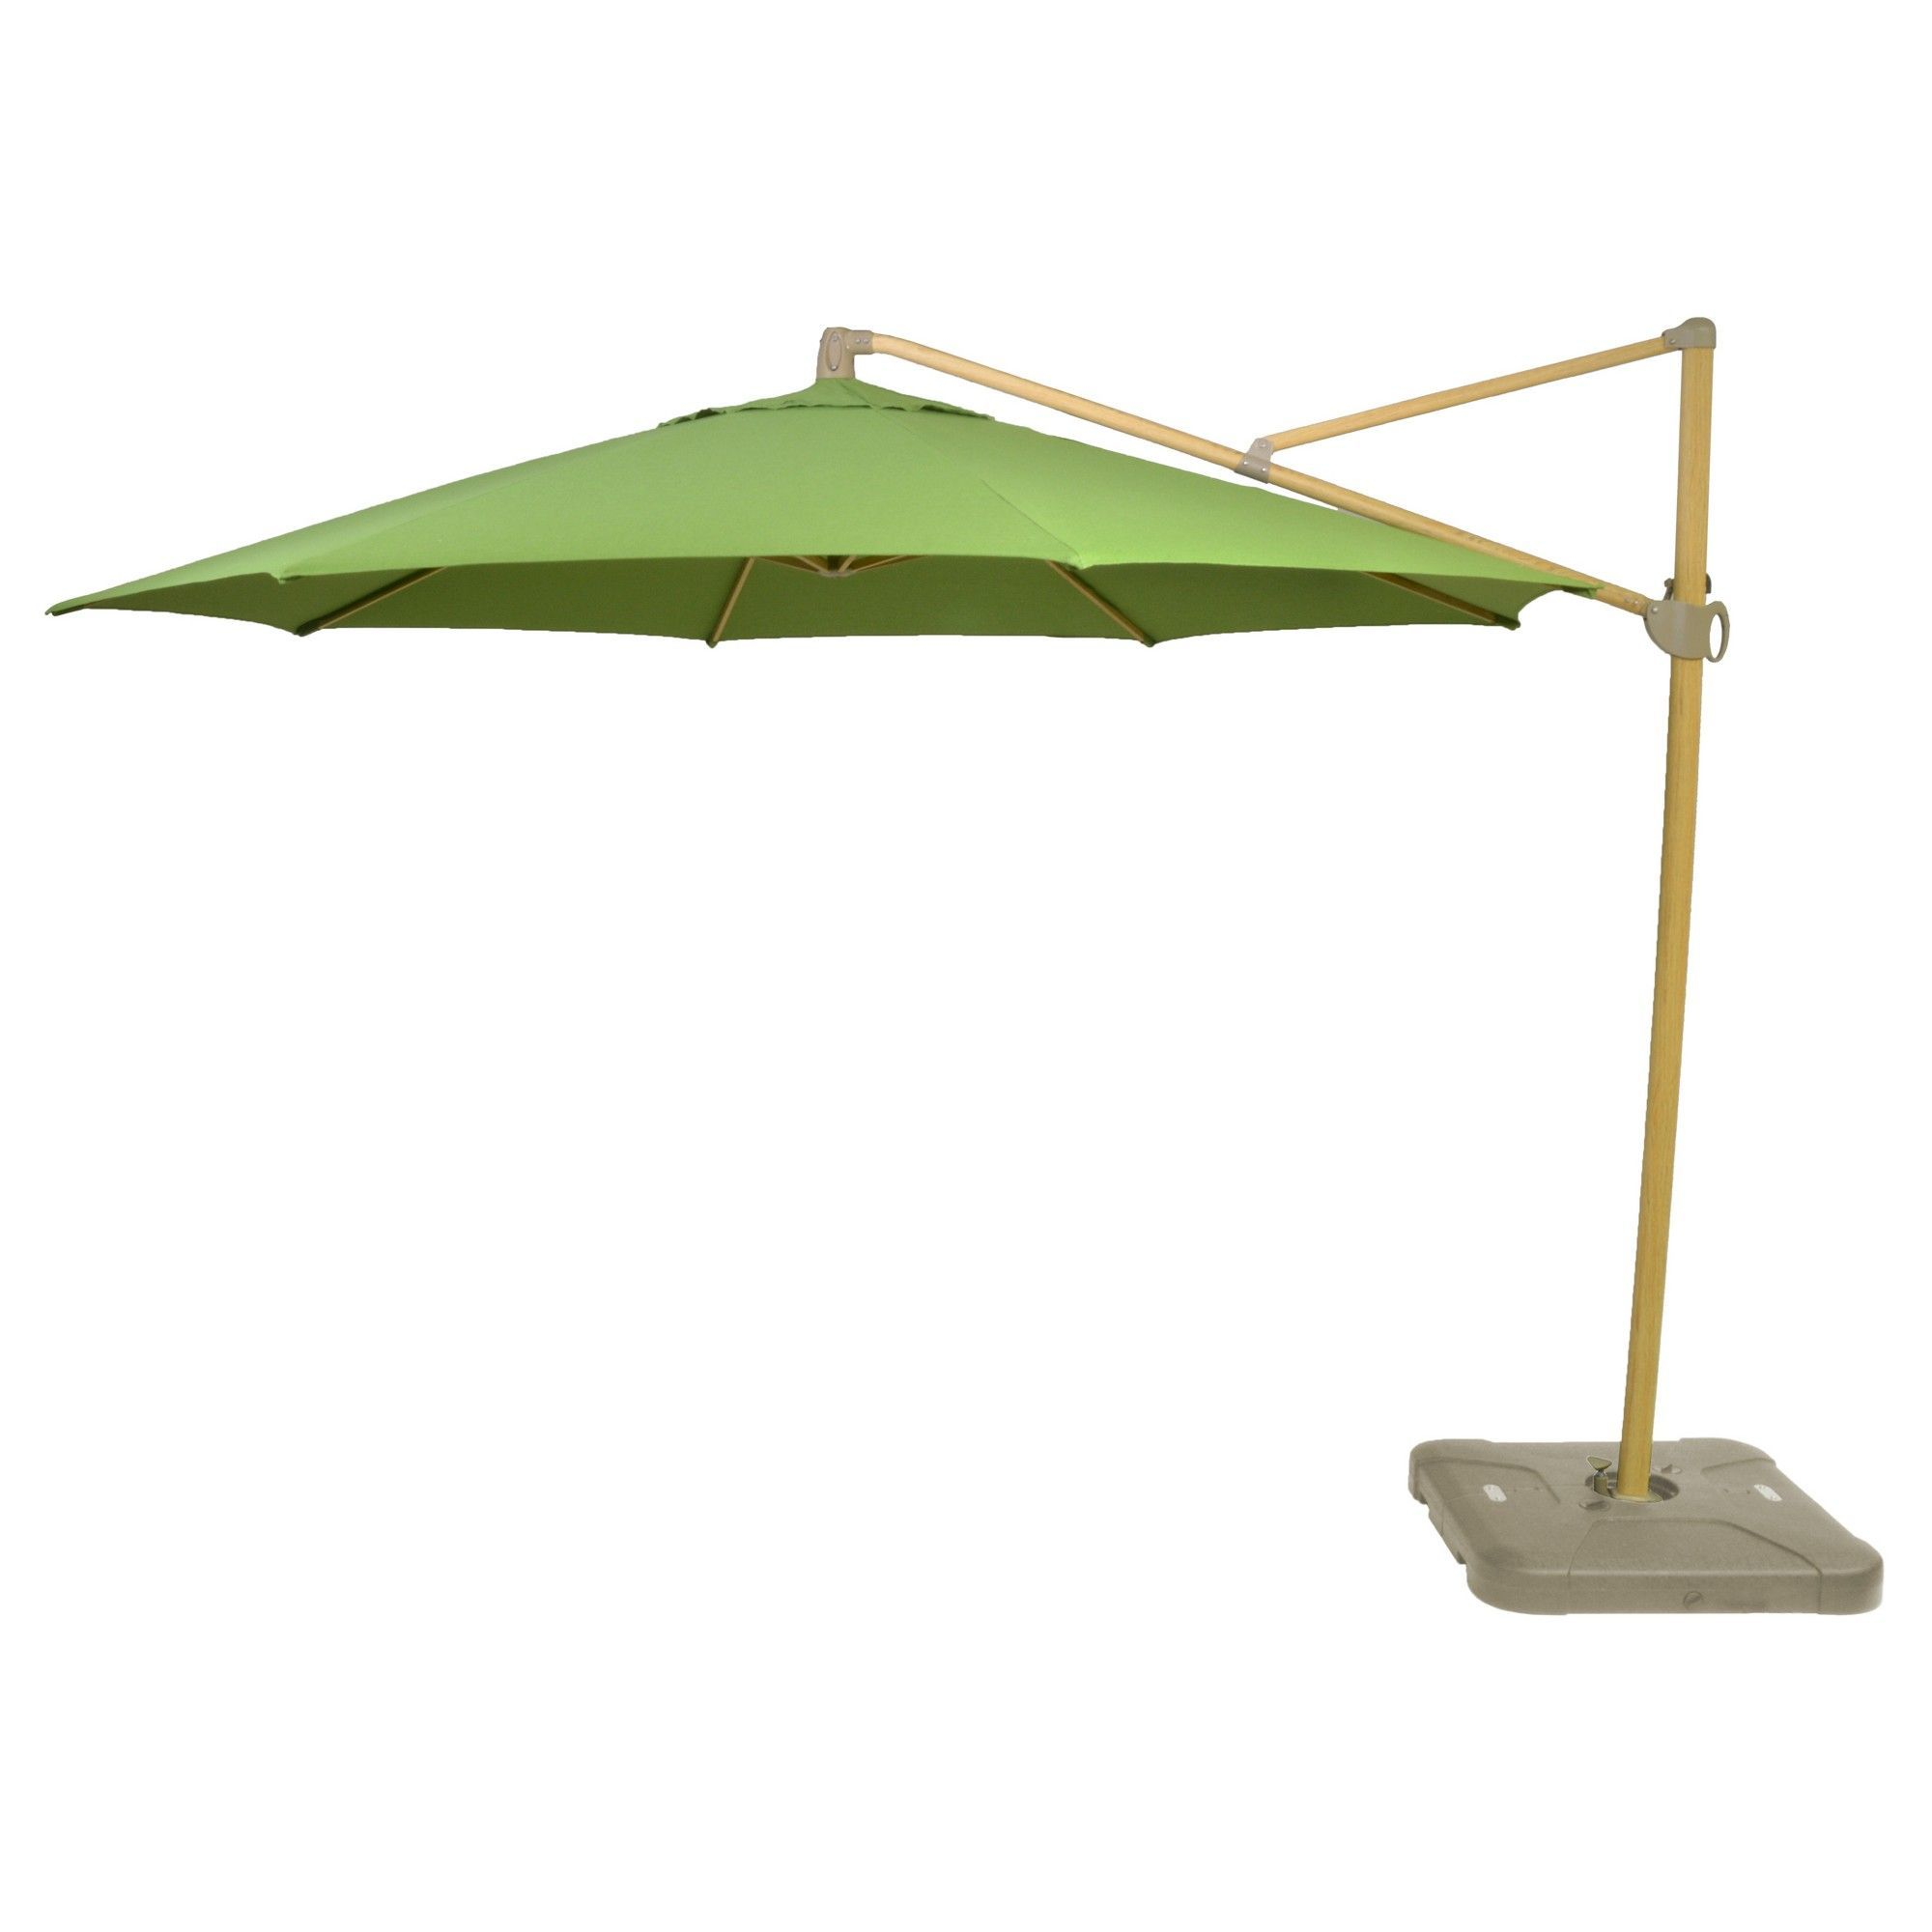 offset umbrella green light wood finish threshold accent table ikea standing mirror pier living room chairs dining mats west elm wall art stacking coffee tables target rugs